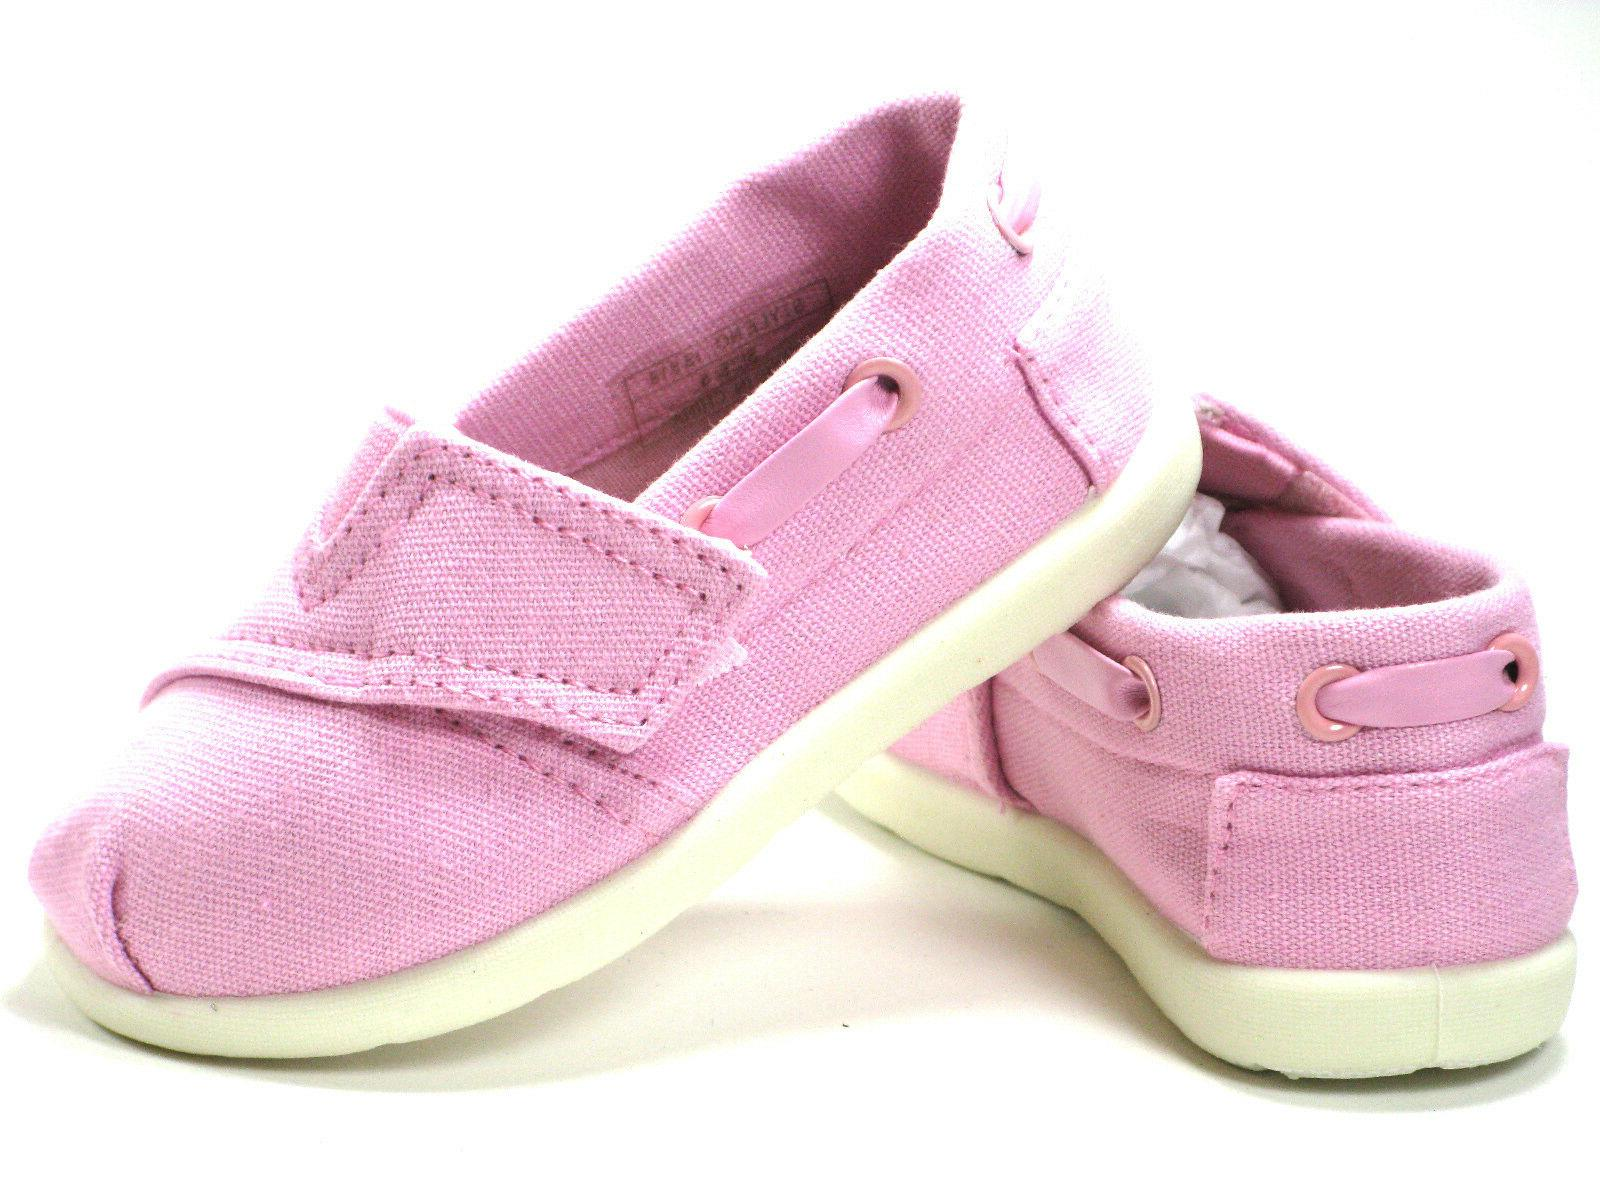 New Oxford Boys Girls Canvas Shoes Size 5 7 8 9